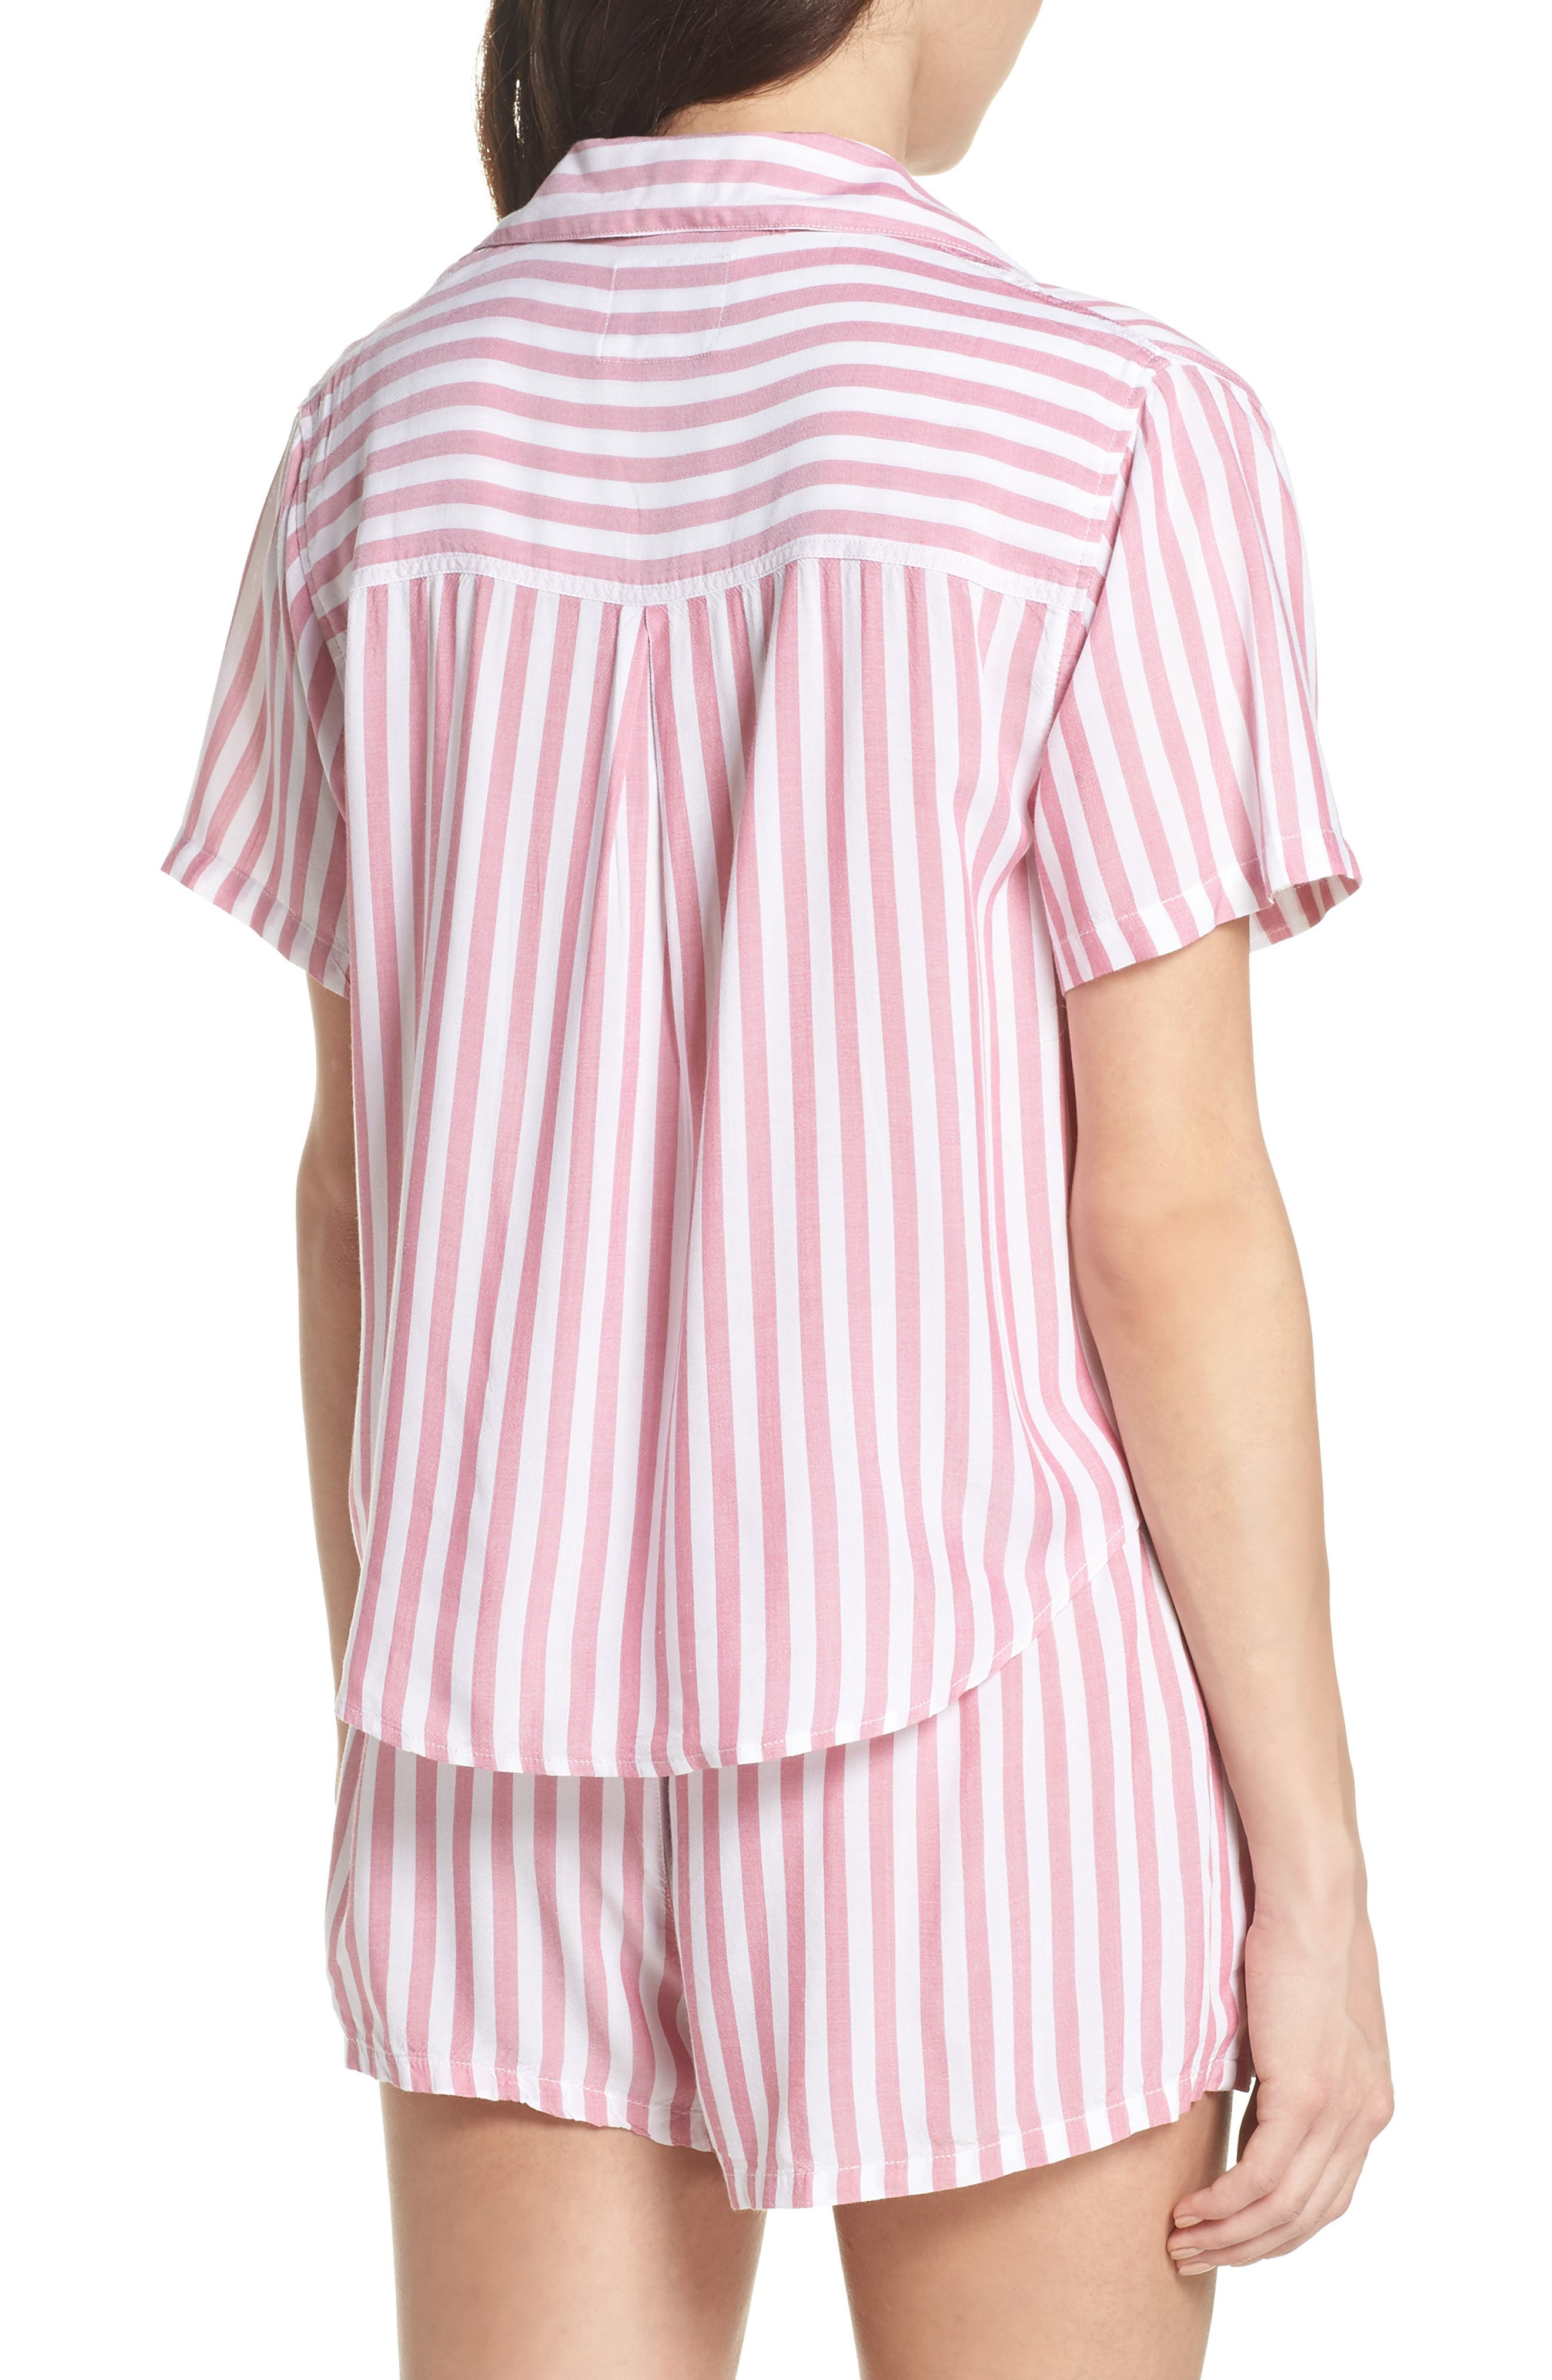 Stripe Short Pajamas,                             Alternate thumbnail 2, color,                             648